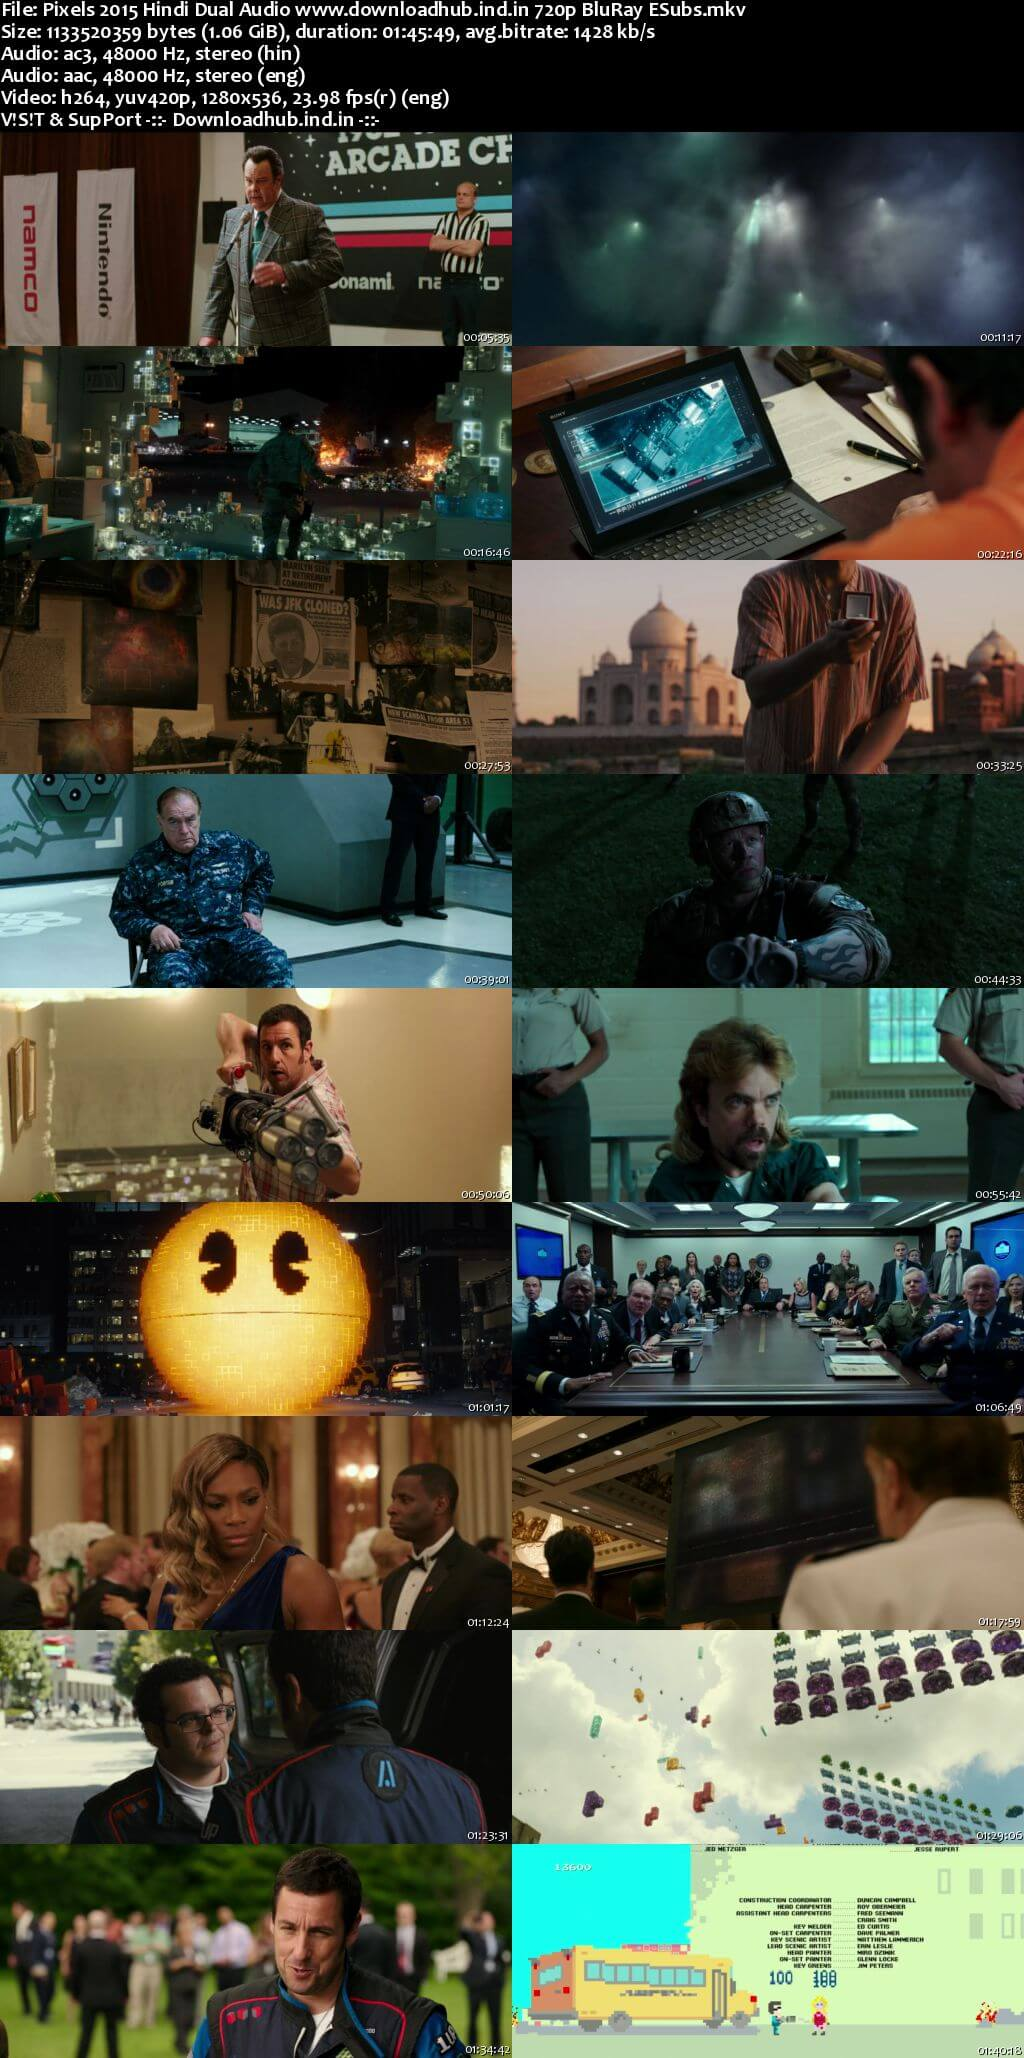 Pixels 2015 Hindi Dual Audio 720p BluRay ESubs